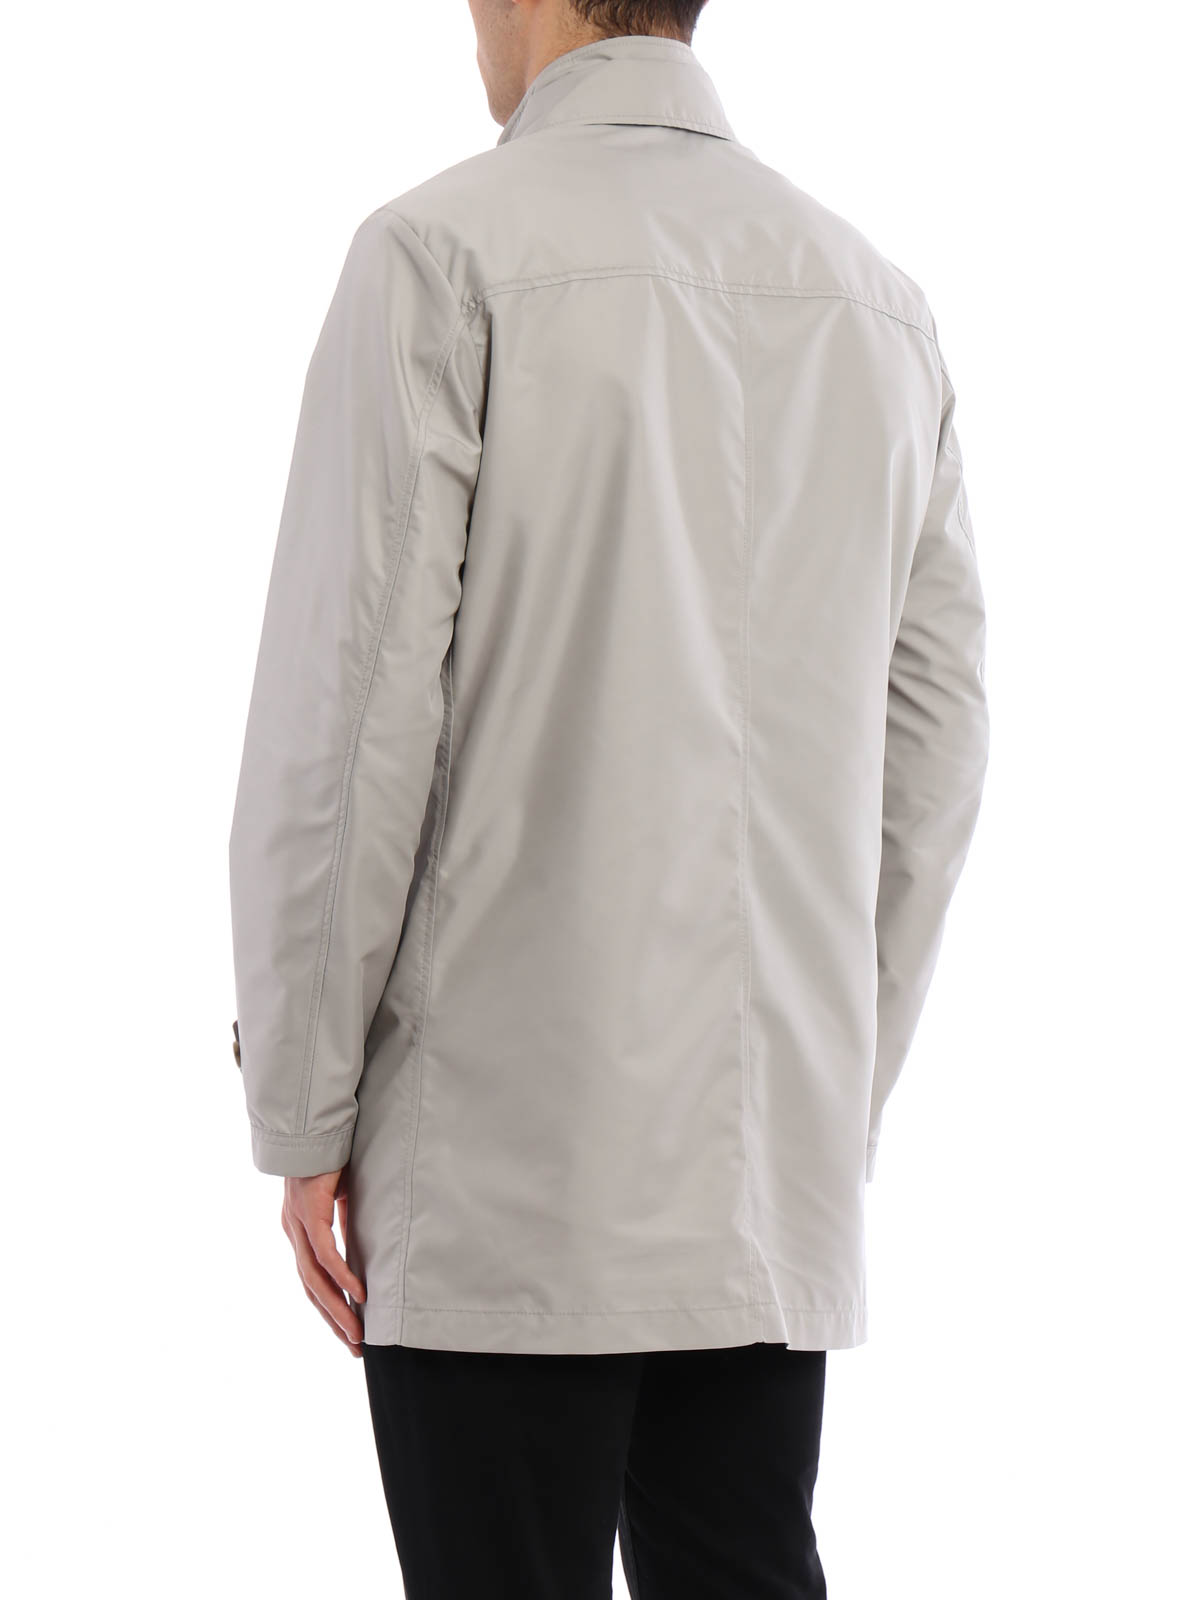 finest selection 65c23 ca89b Fay - Trenchcoat Fur Herren - Beige - Trenchcoats ...